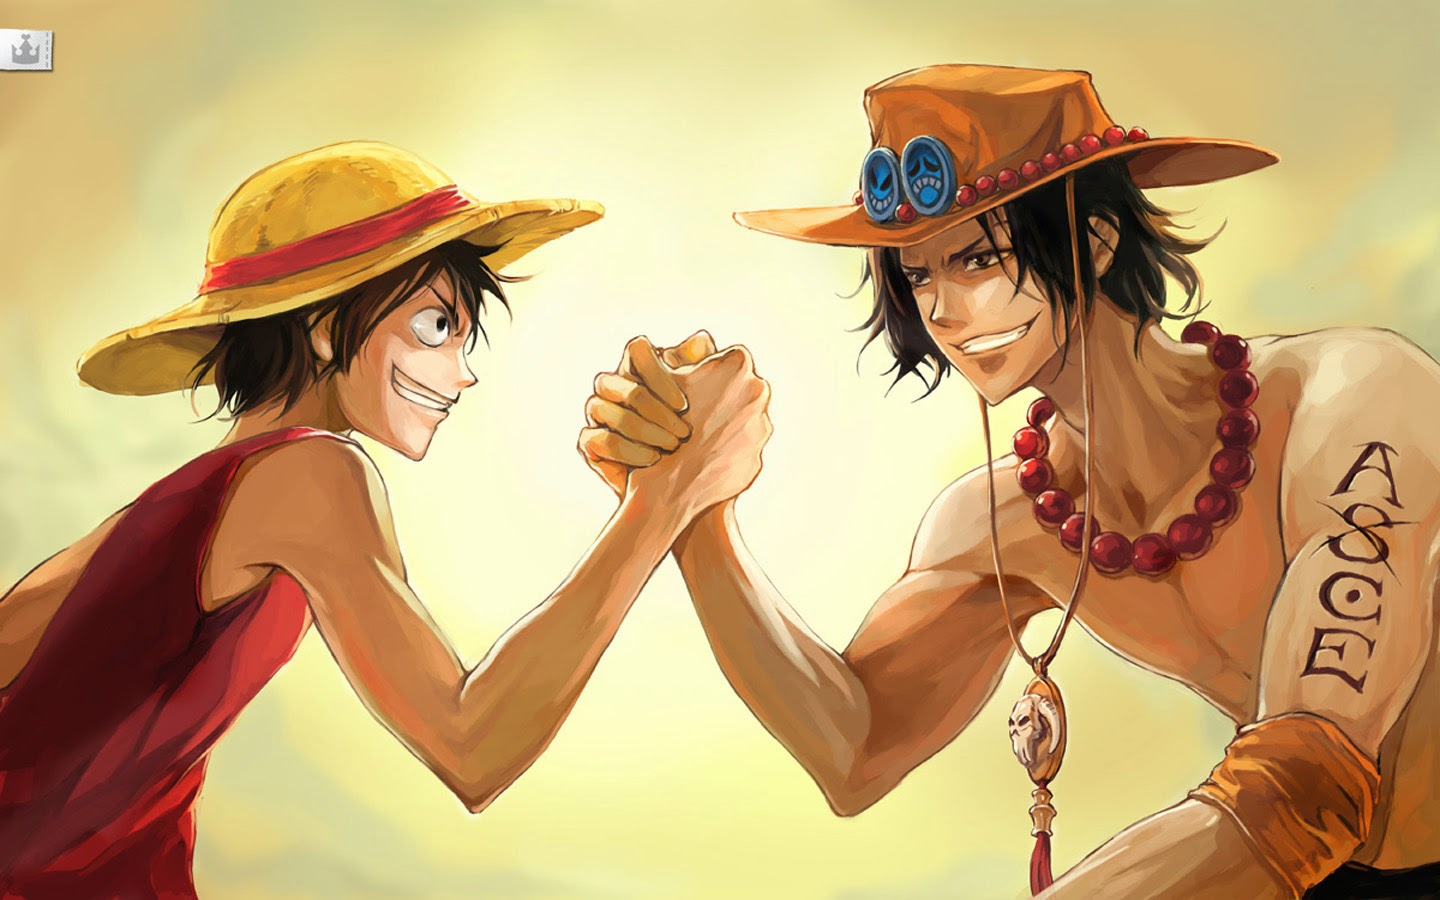 Top Ace Sabo And Luffy Chibi Wallpapers